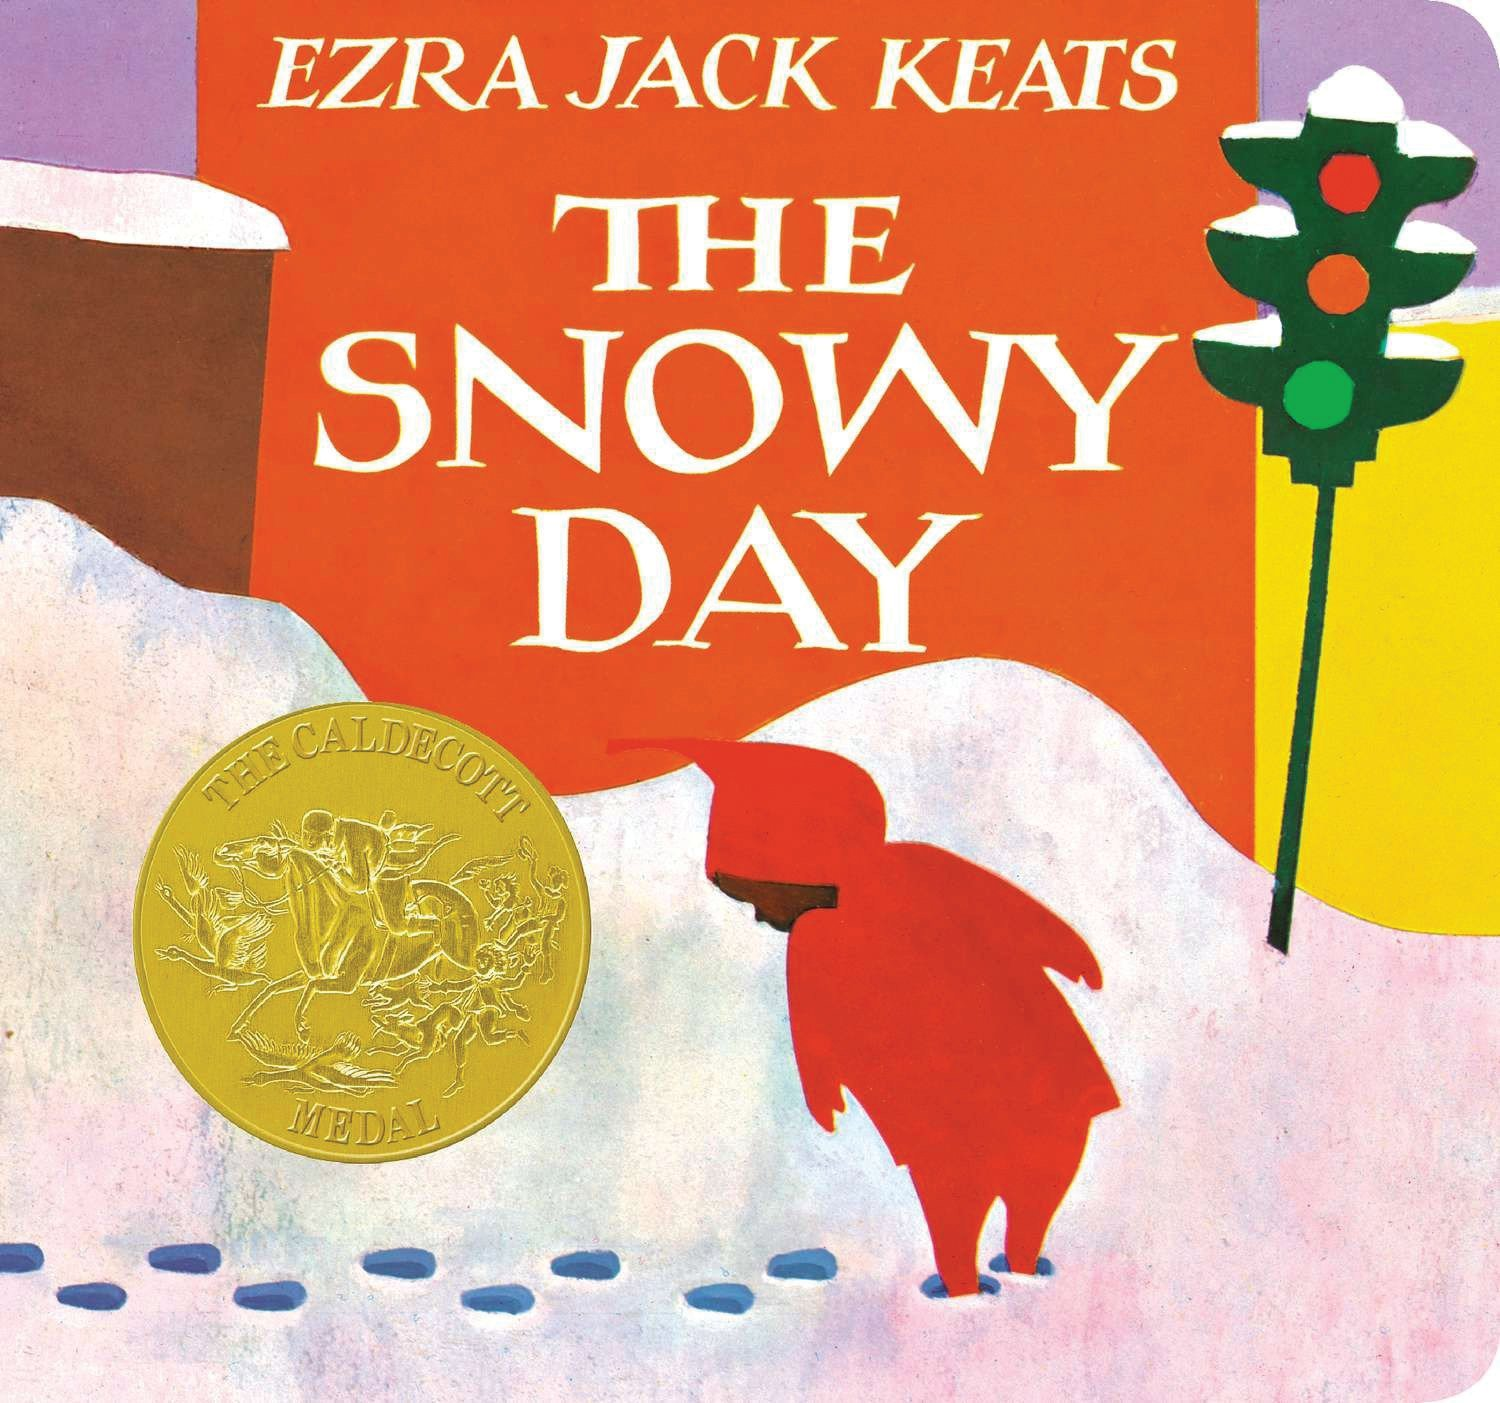 1. The Snowy Day